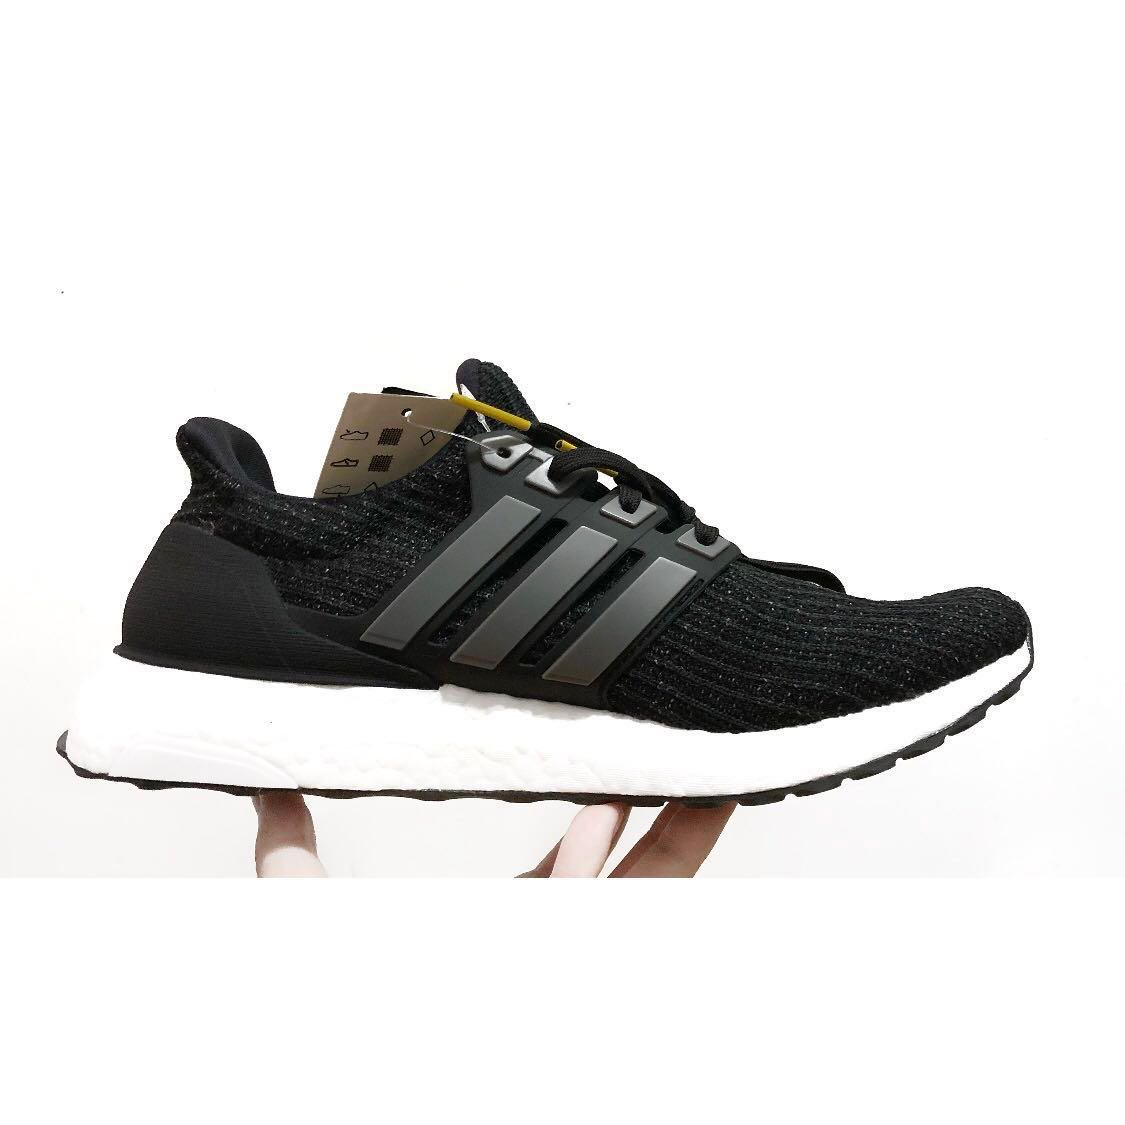 07c5dee27776a 🎉 UNUSED Adidas Ultraboost 4.0 LTD Black 5th Anniversary BB6220 ...